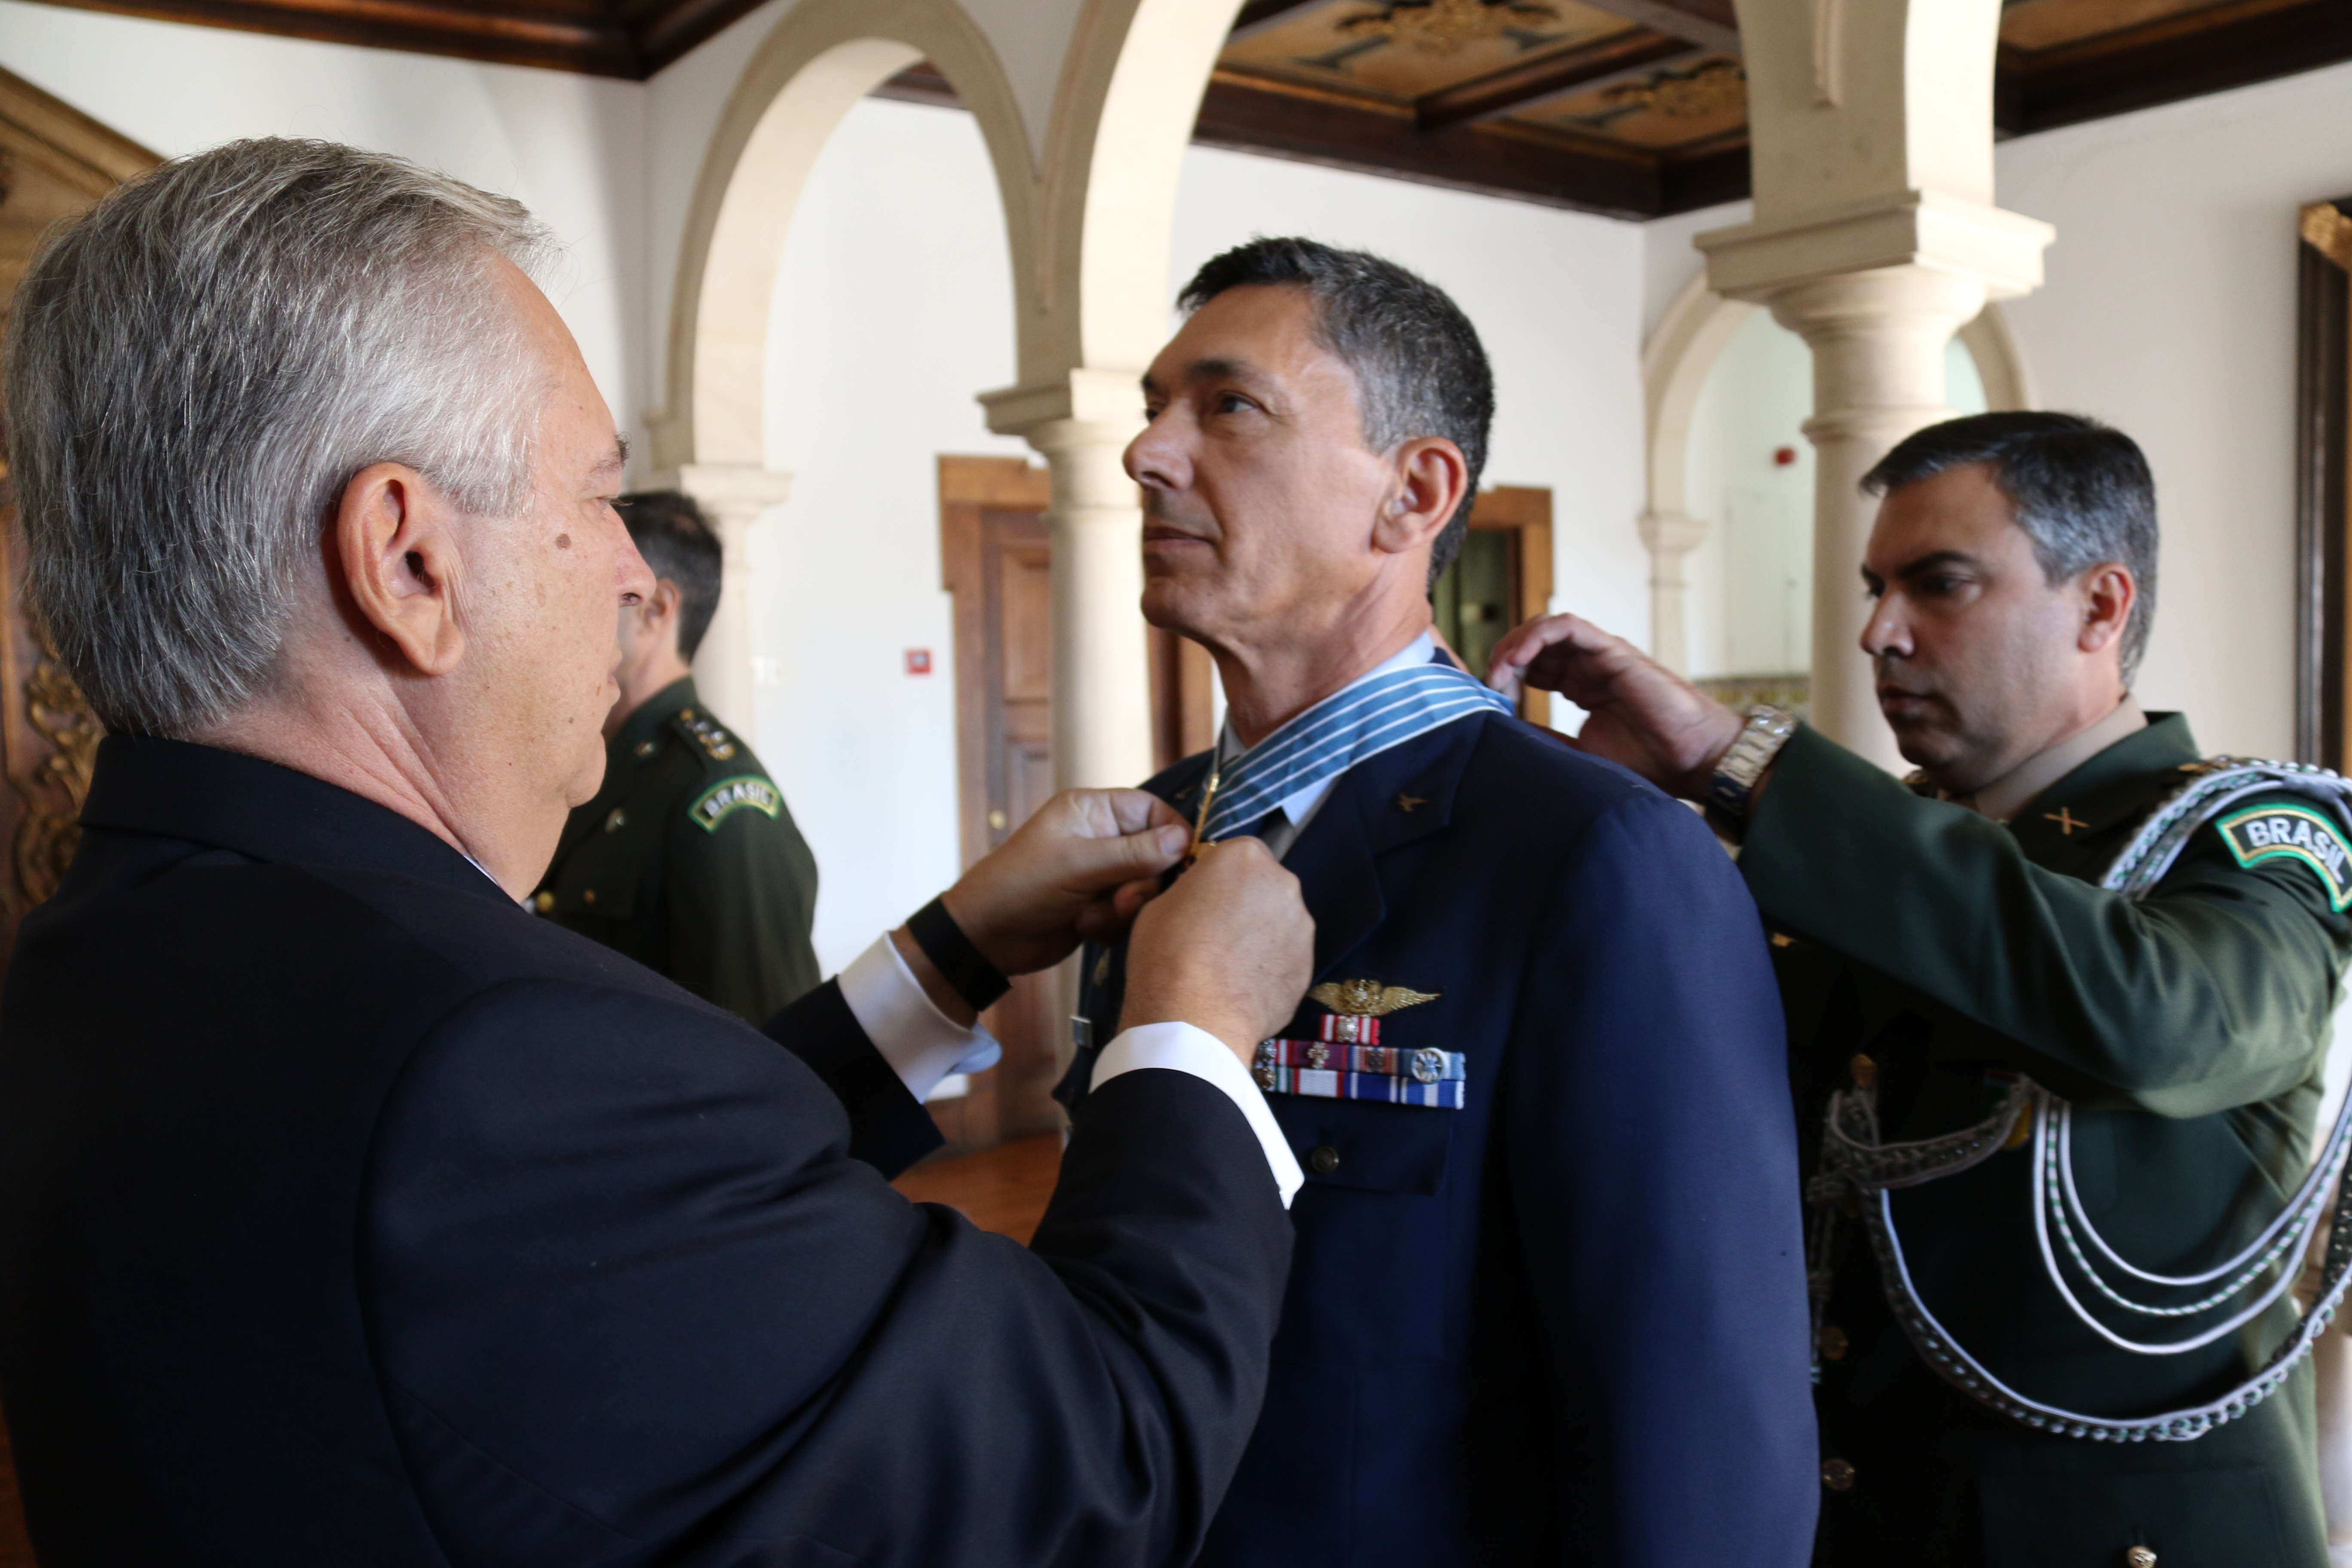 Major General Rafael Martins condecorado pelo Brasil